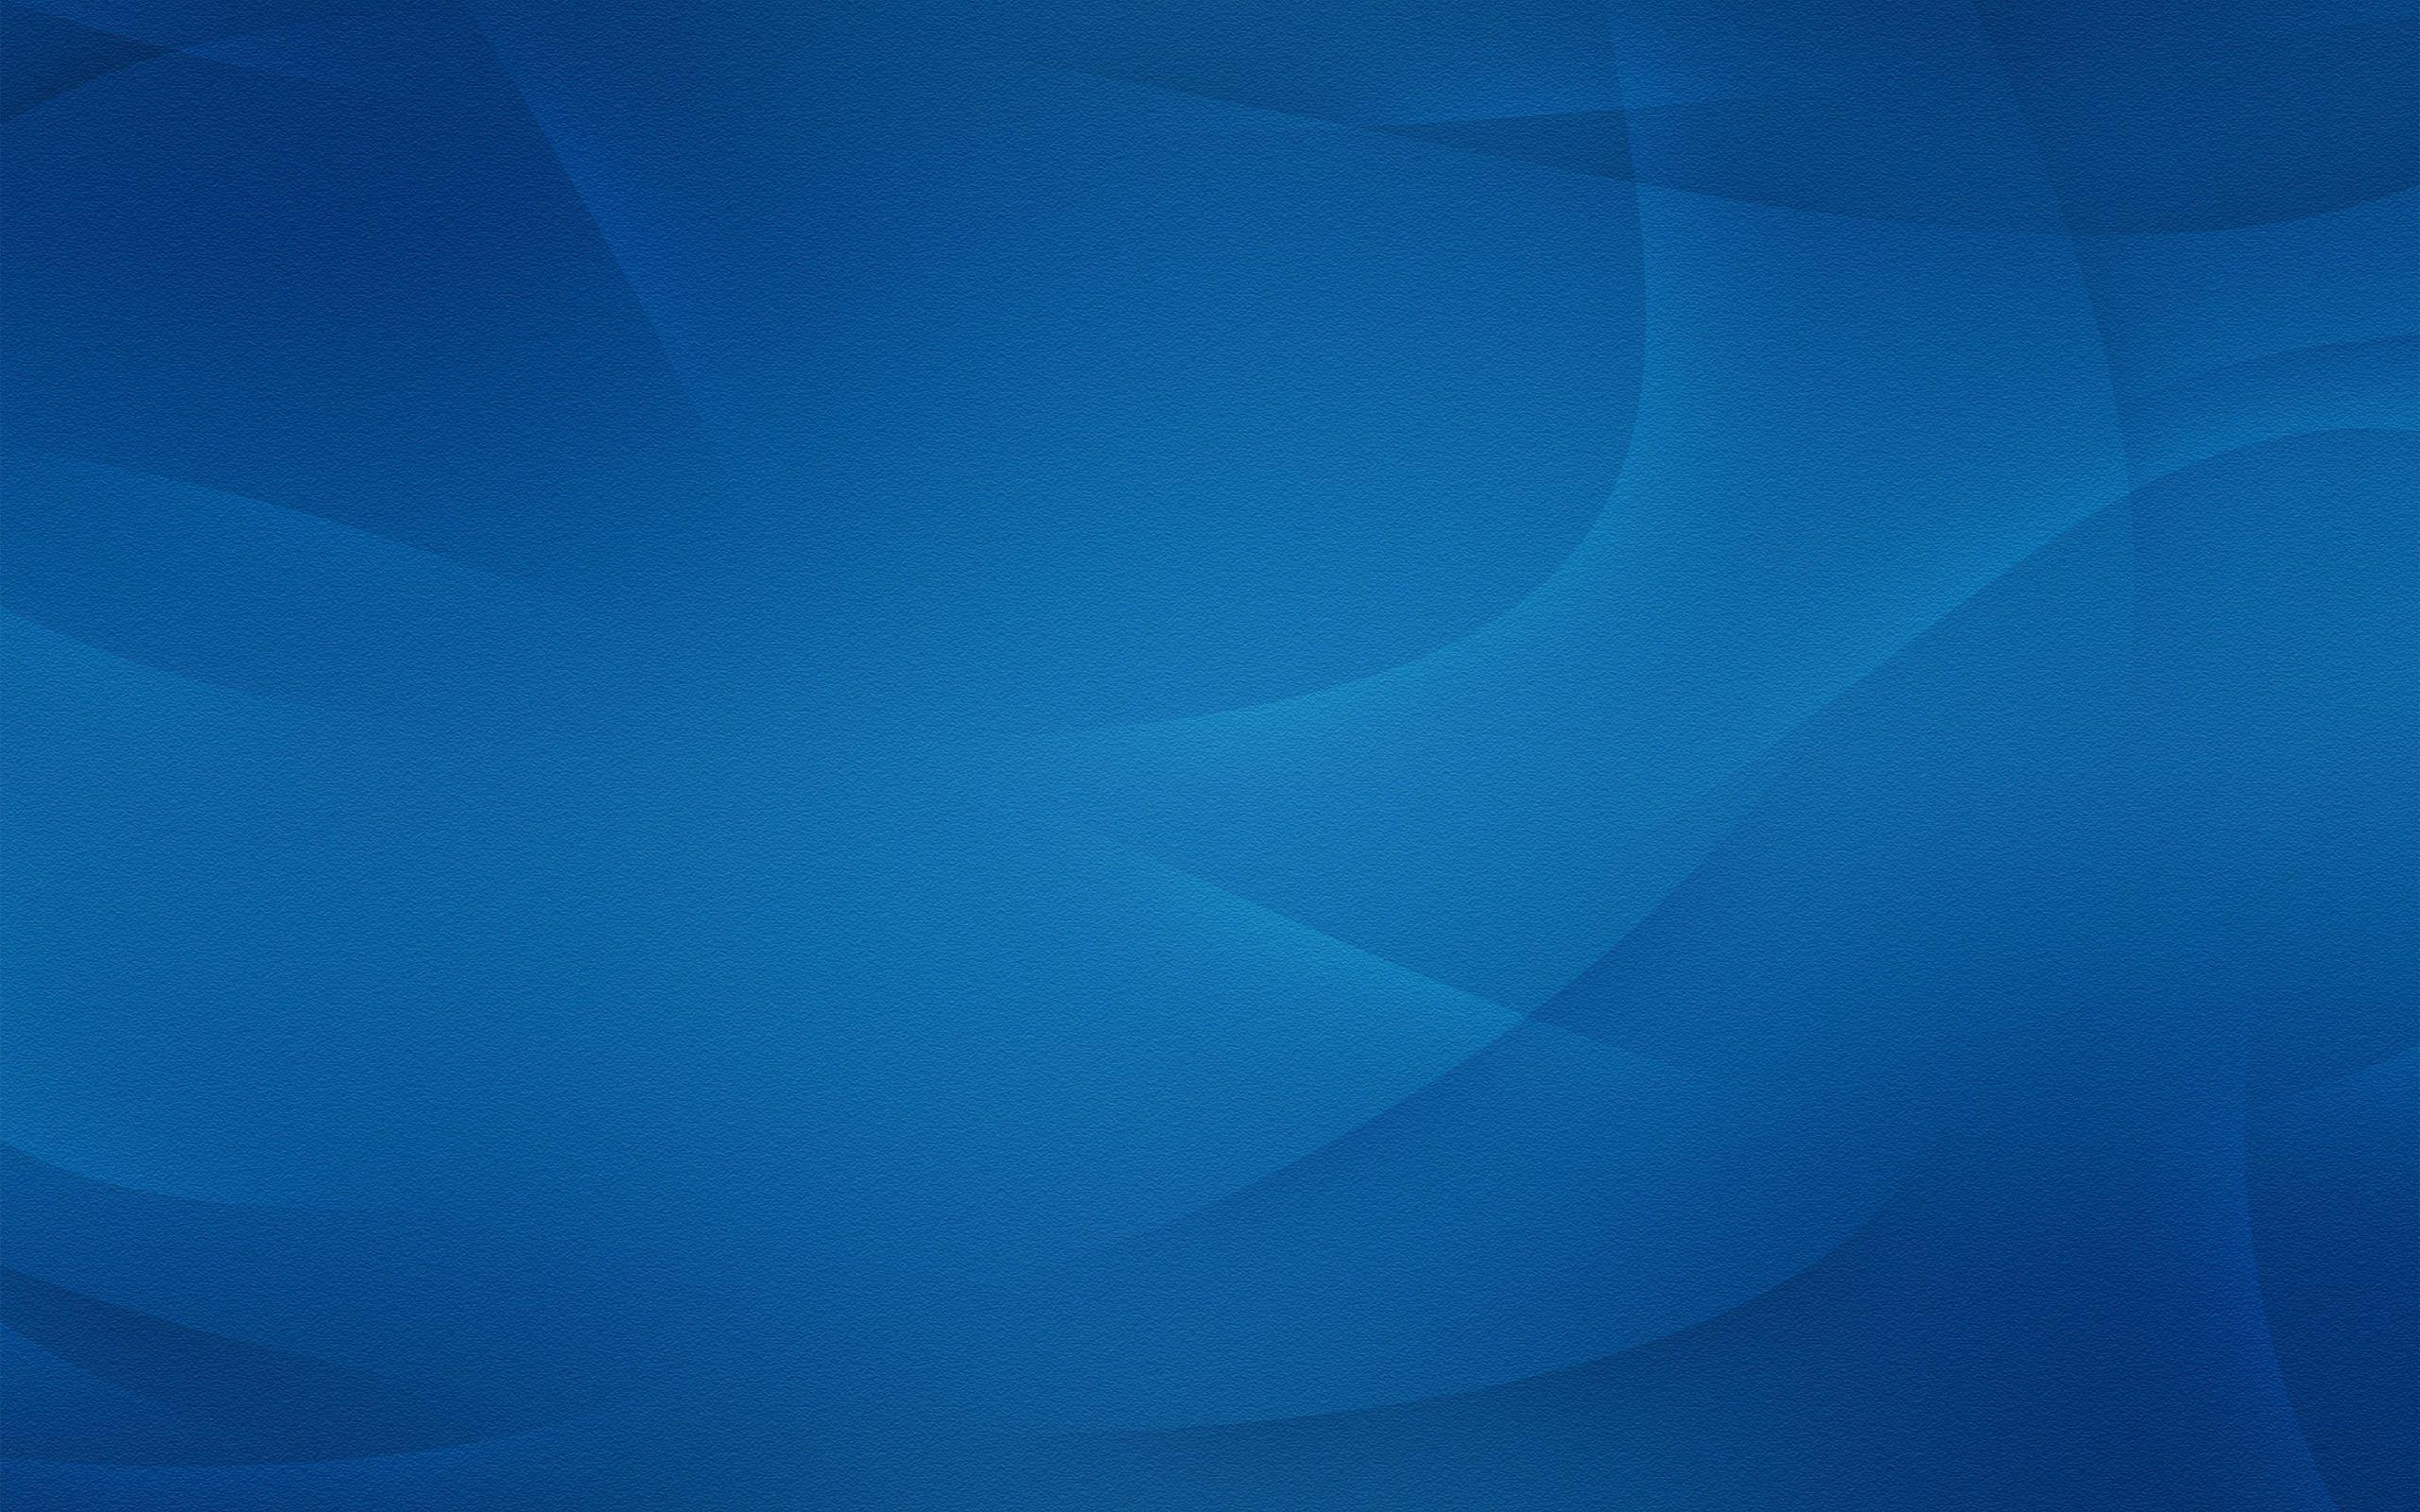 Abstract Wallpapers Blue 2560x1600